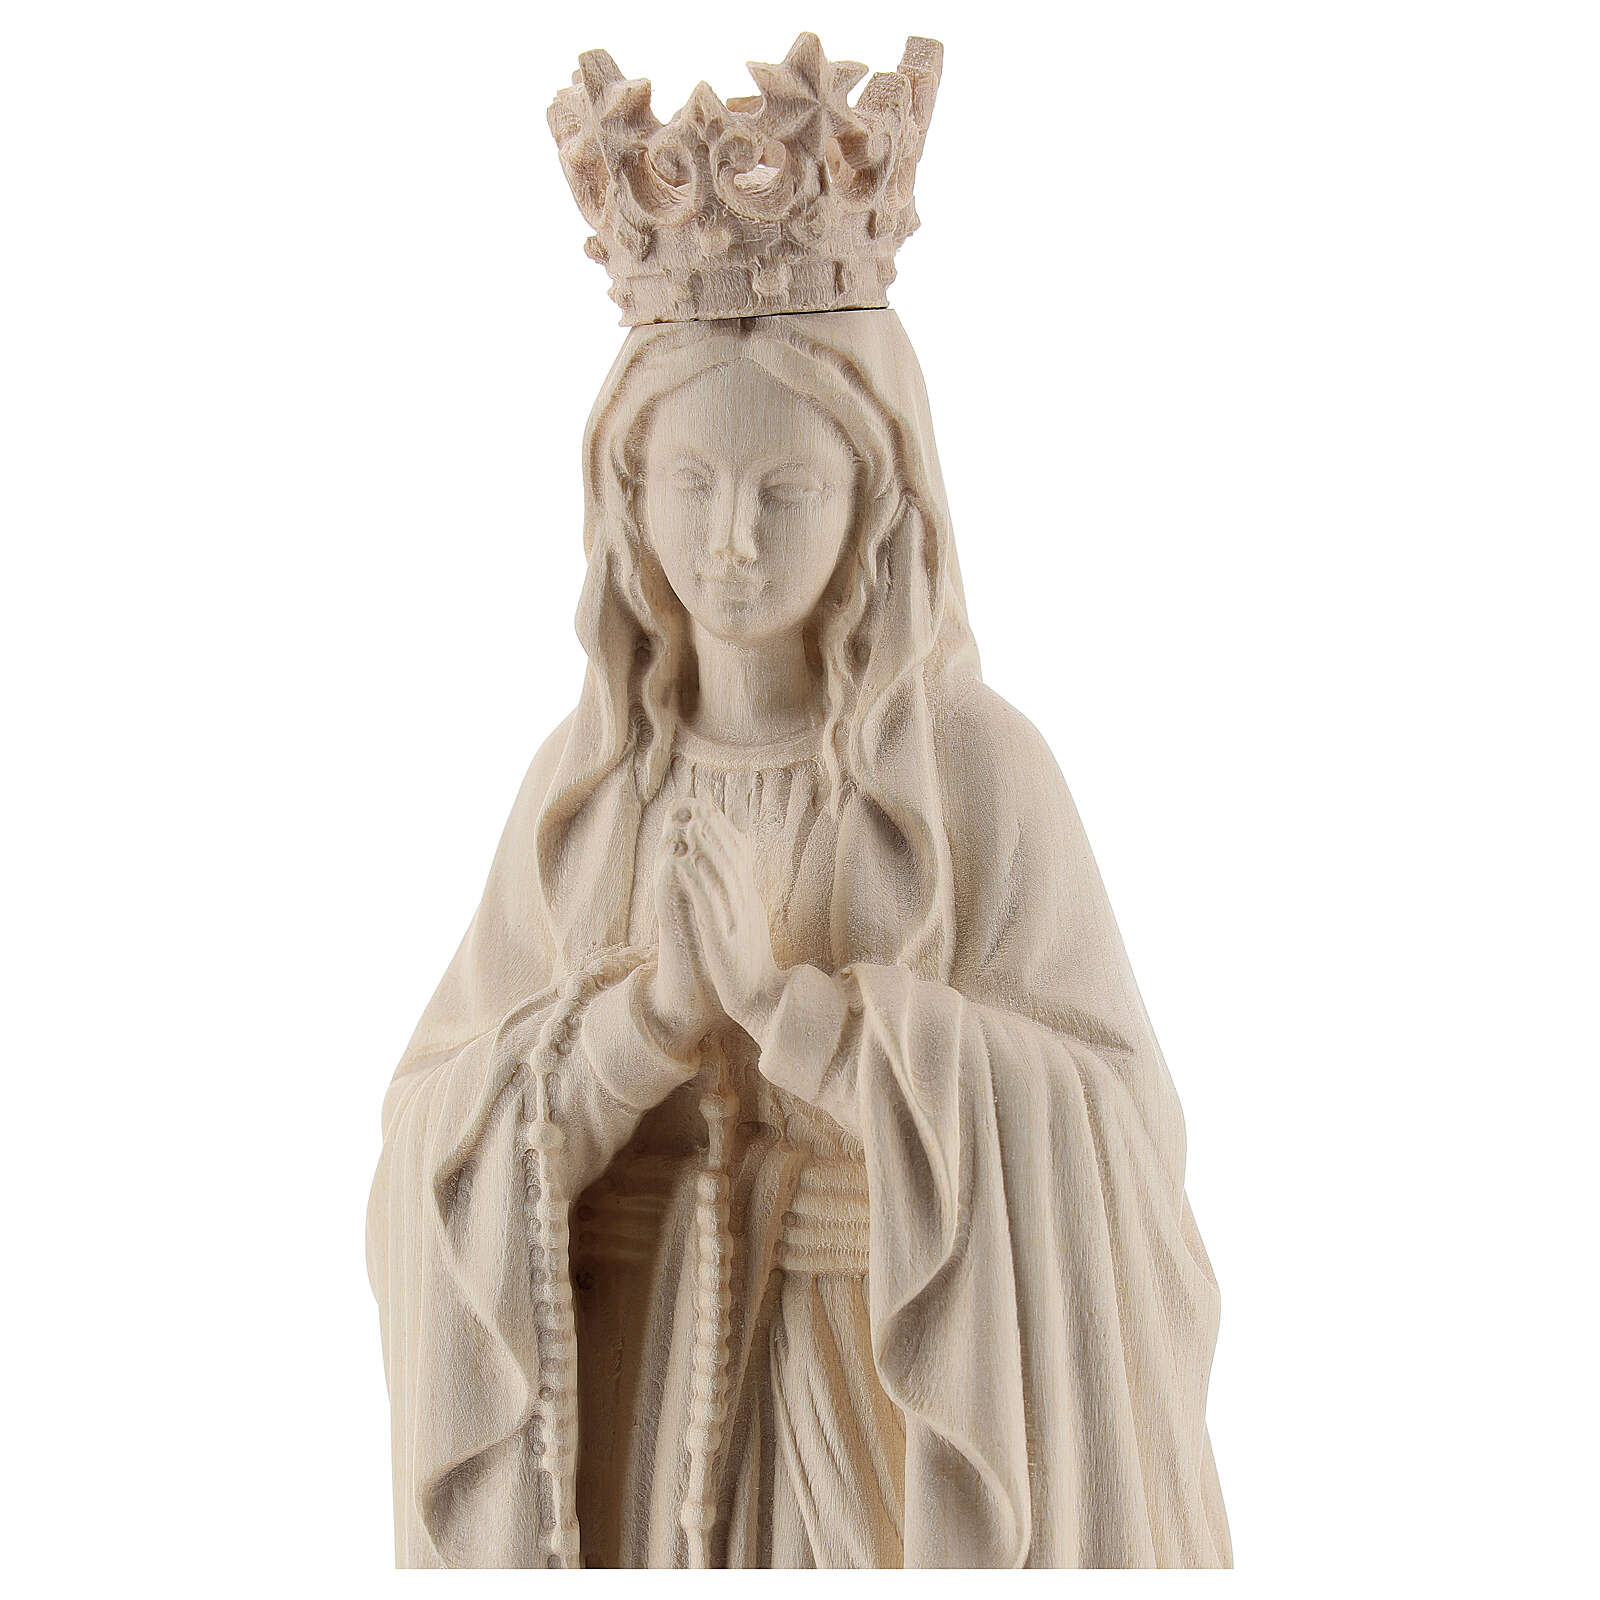 Our Lady of Lourdes with crown in natural Valgardena wood 4